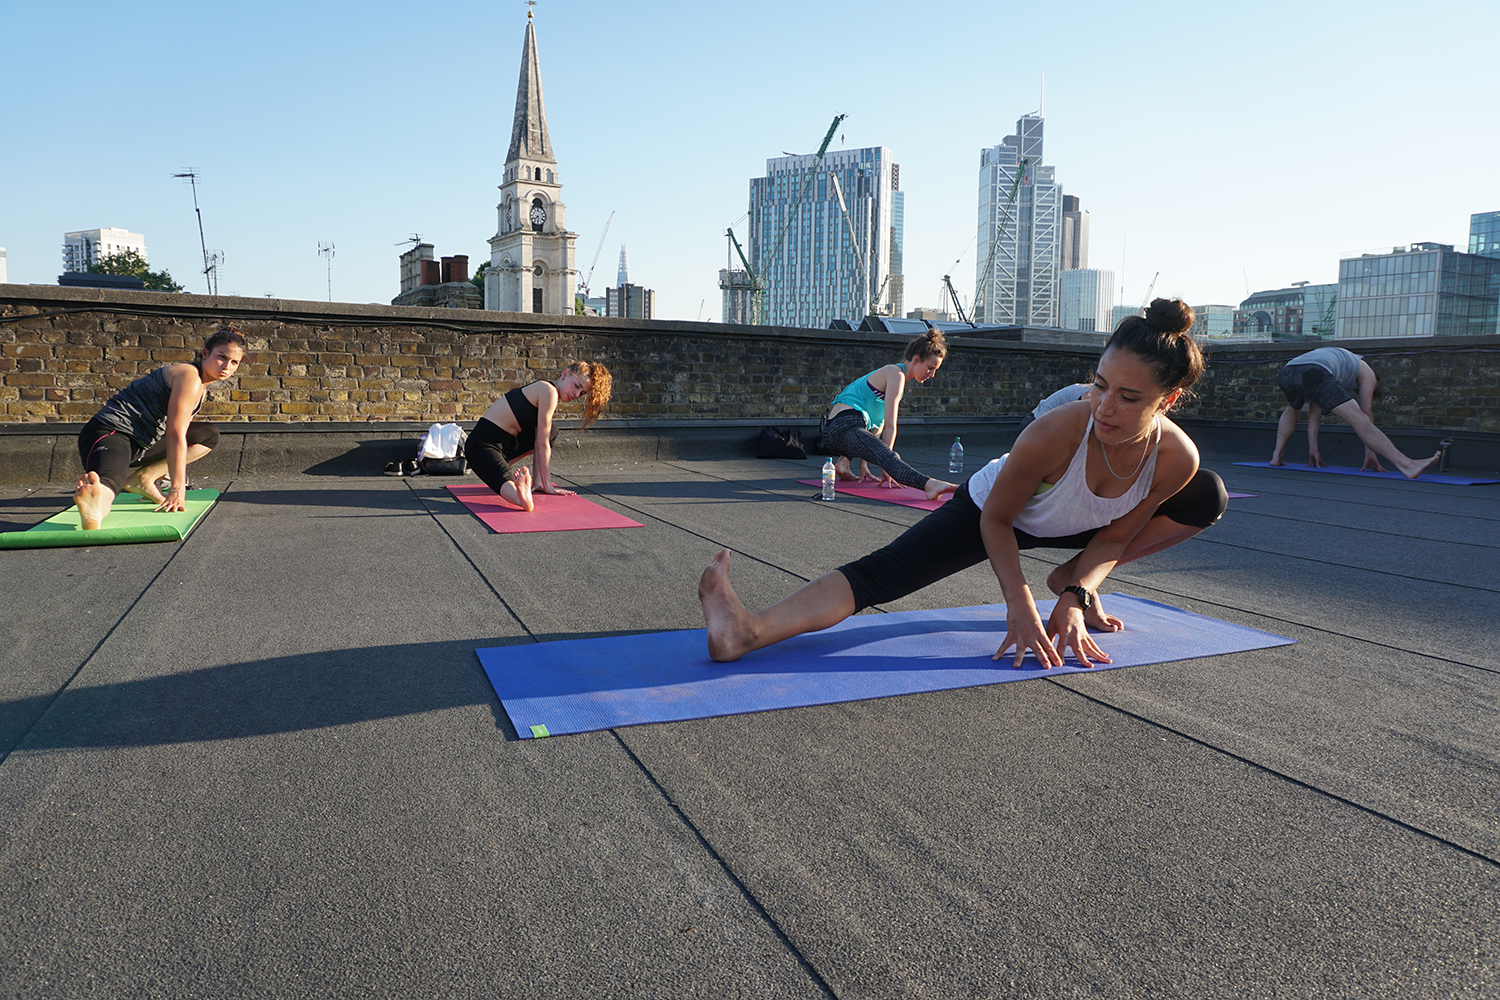 Fat Buddah Yoga, F Block Roof, Event Space, Skyline, Roof top